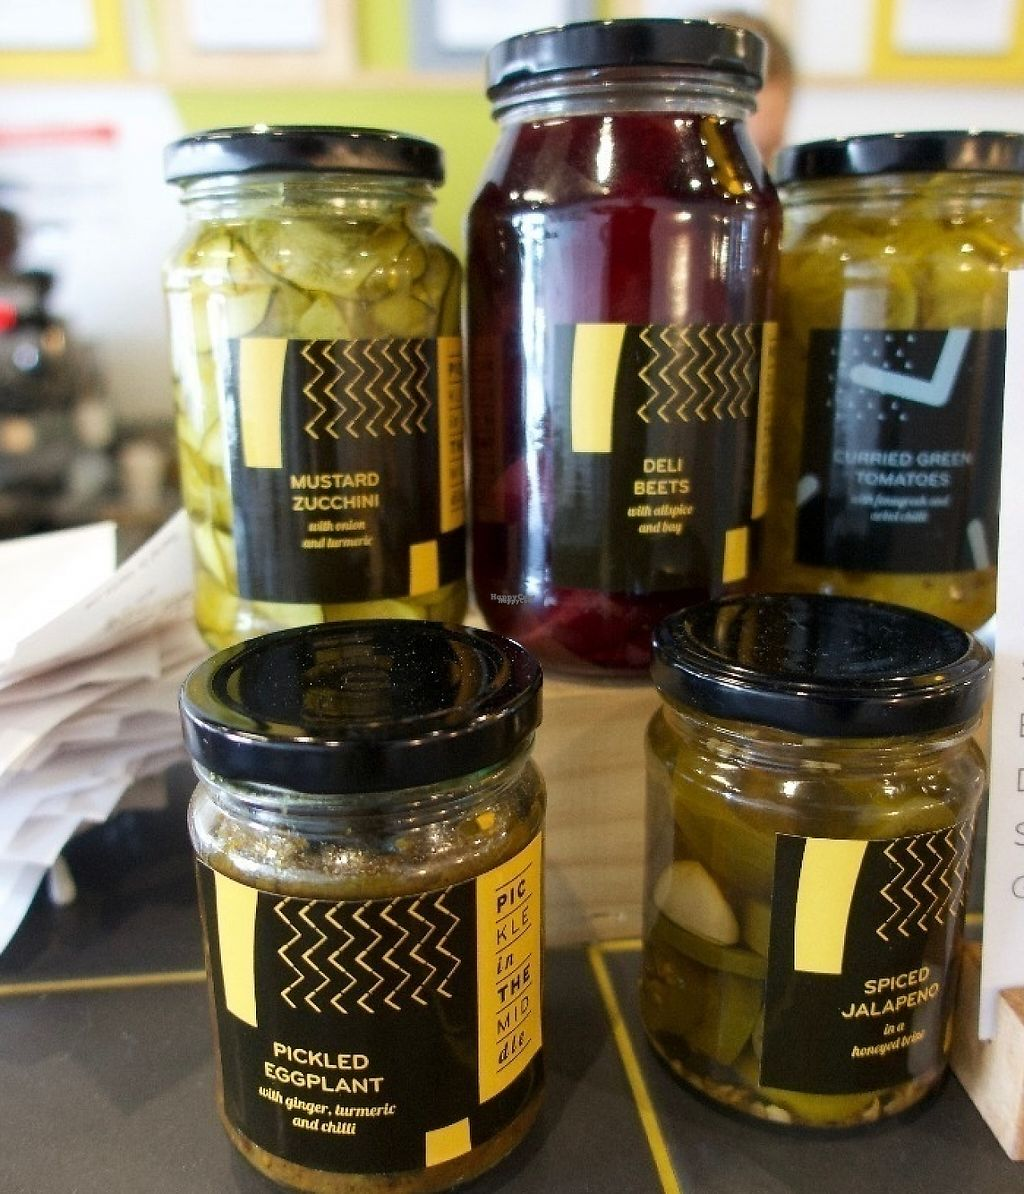 """Photo of Pickle In The Middle  by <a href=""""/members/profile/veganbob"""">veganbob</a> <br/>House made pickles to take home <br/> October 12, 2016  - <a href='/contact/abuse/image/81206/255321'>Report</a>"""